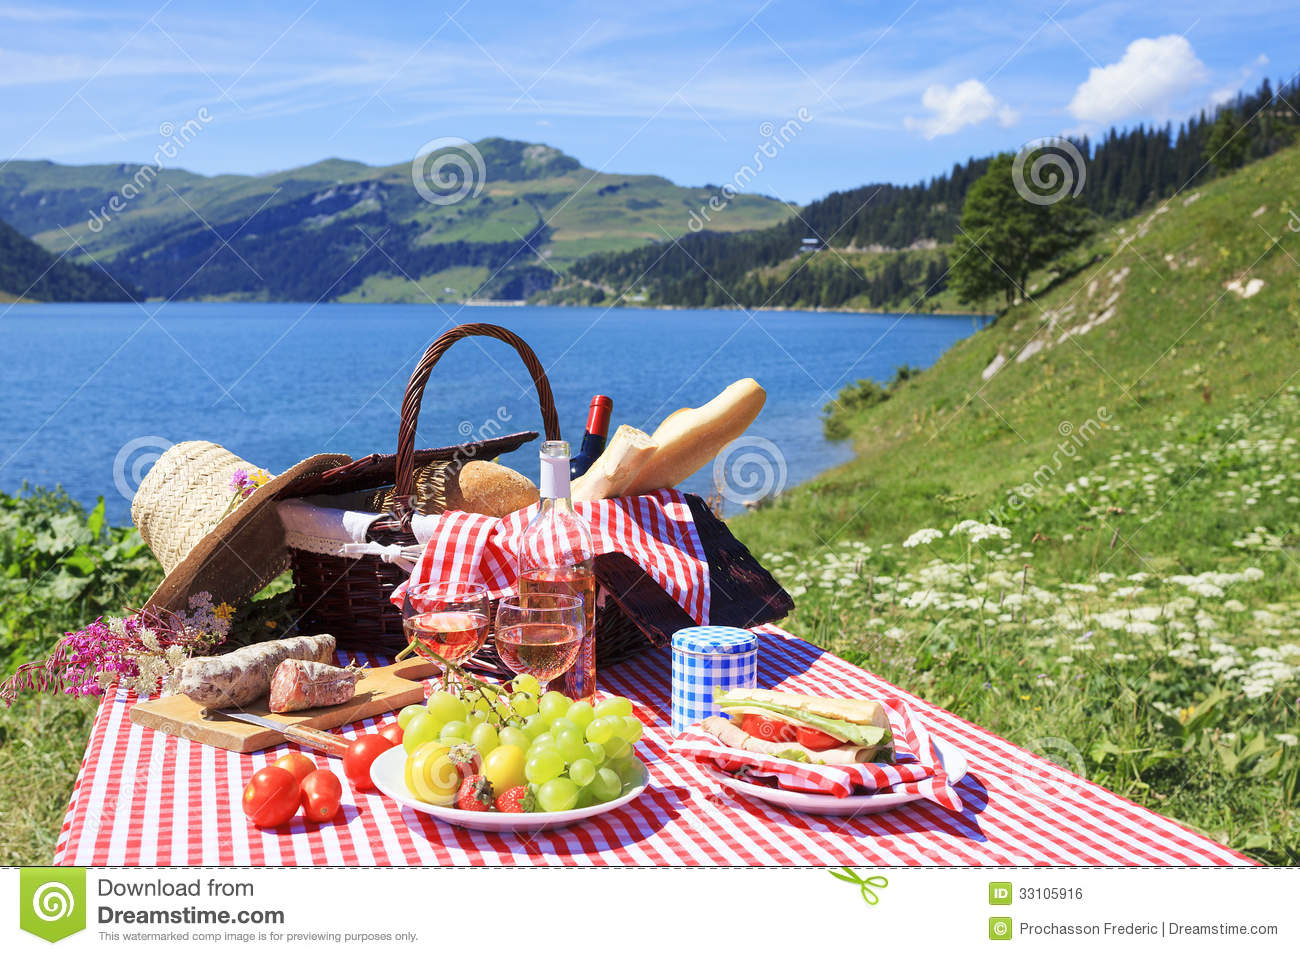 Picnic And Lake Royalty Free Stock Image - Image: 33105916